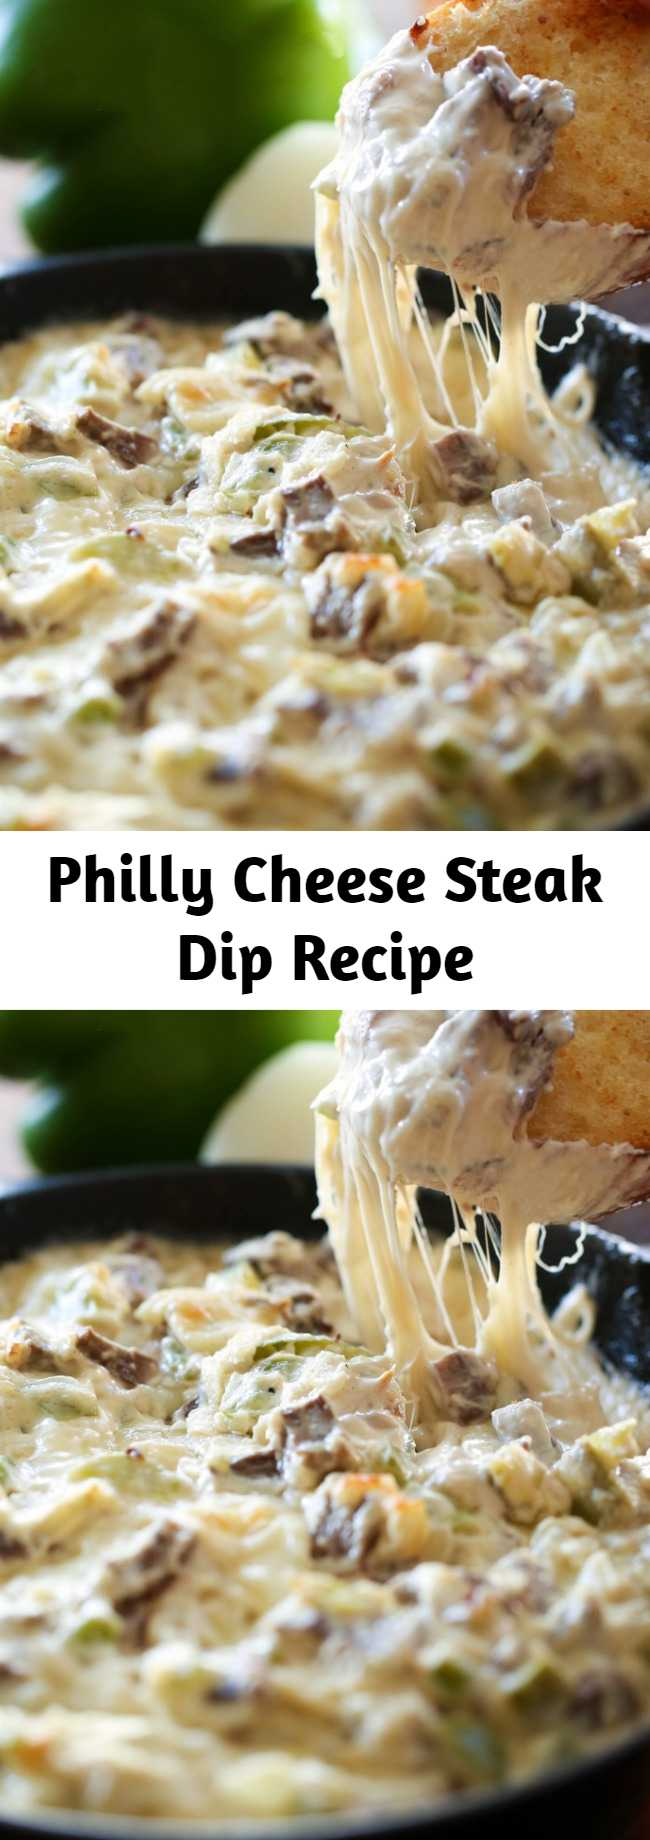 Philly Cheese Steak Dip Recipe - This Philly Cheese Steak Dip is phenomenal and truly tastes JUST like you are biting into that beloved and well sought-after sandwich. The flavor is incredible and this recipe is super unique and exciting!